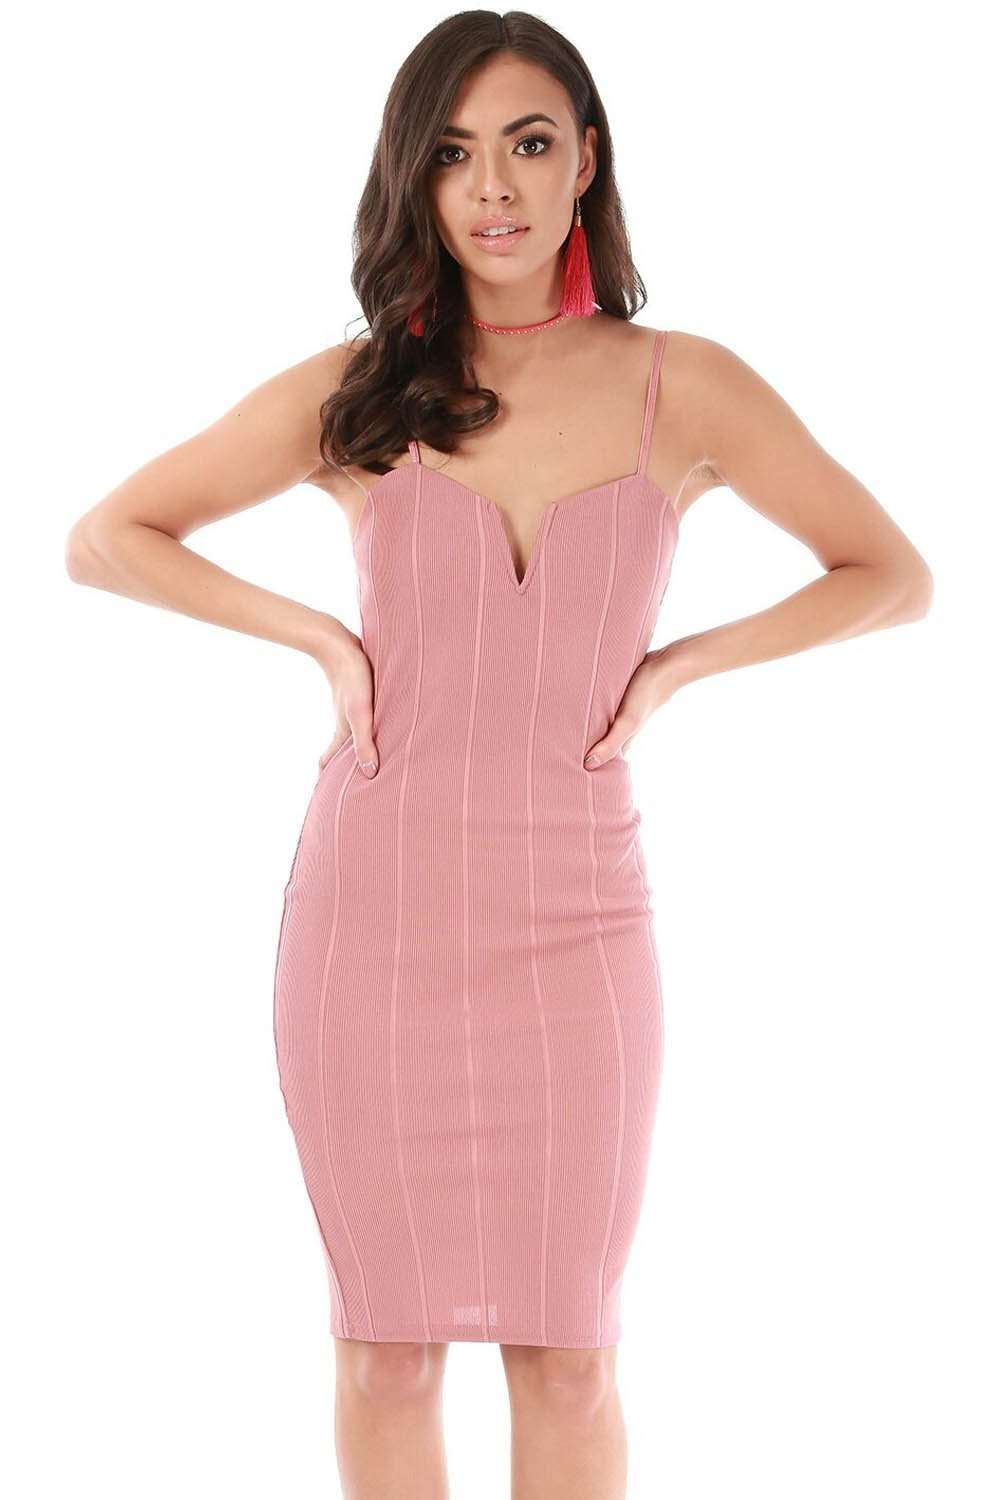 Strappy Pink Plunge Neck Bandage Bodycon Midi Dress - bejealous-com